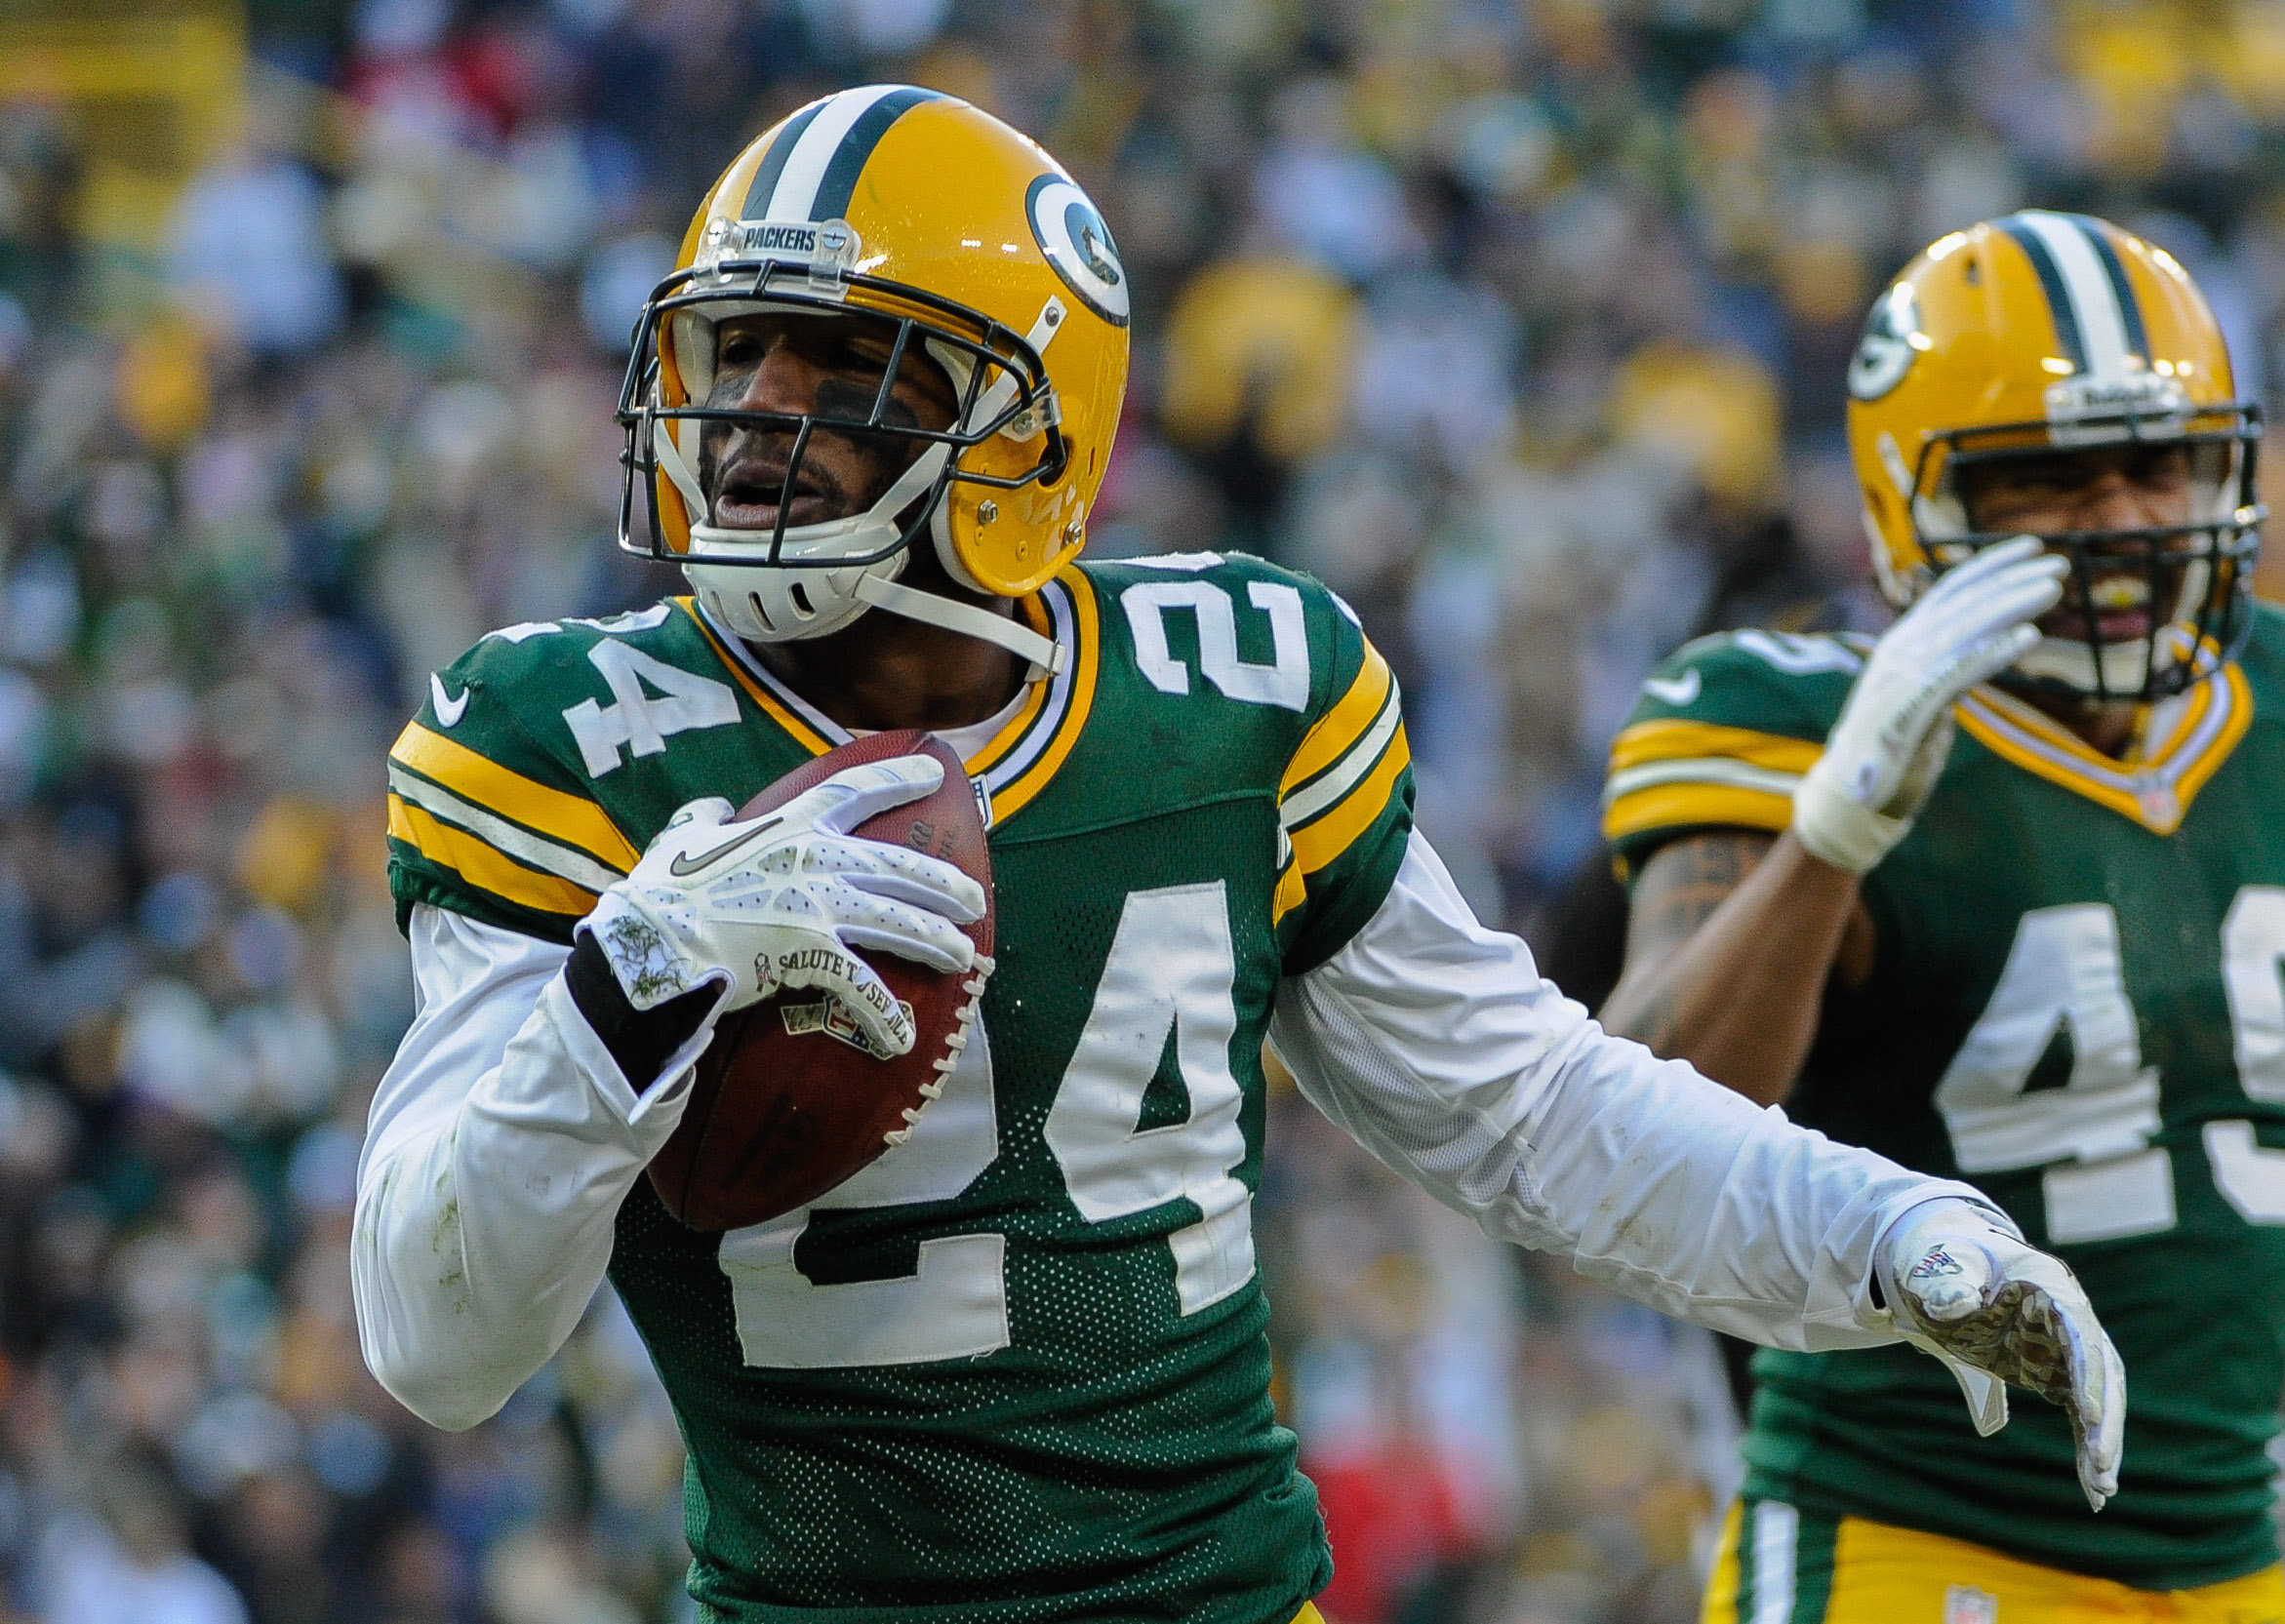 Jarrett Bush could again be in a battle for a roster spot. Will he win out again?